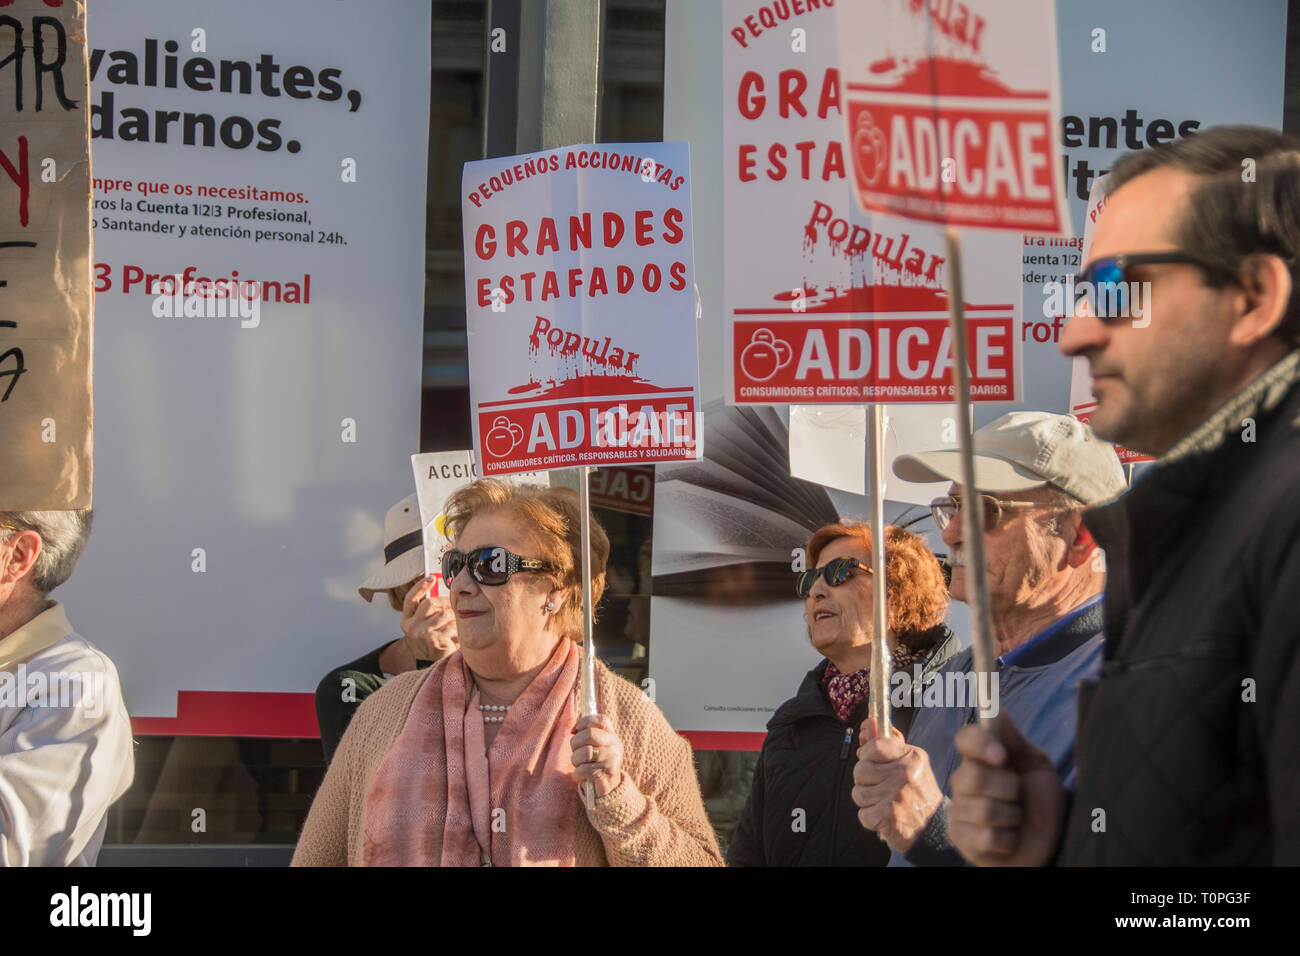 People screaming dont trust in banks they are the thieves they have all our  money. Demonstration against the popular bank, of the group of Santander bank by the small shareholders swindled in the year 2018. 305,000 shareholders lost all their money for the bankrupt of the popular bank. executed by the fraud of the group of Emilio Saracho with the bank of Spain. Credit: Alberto Sibaja Ramírez/Alamy Live News - Stock Image